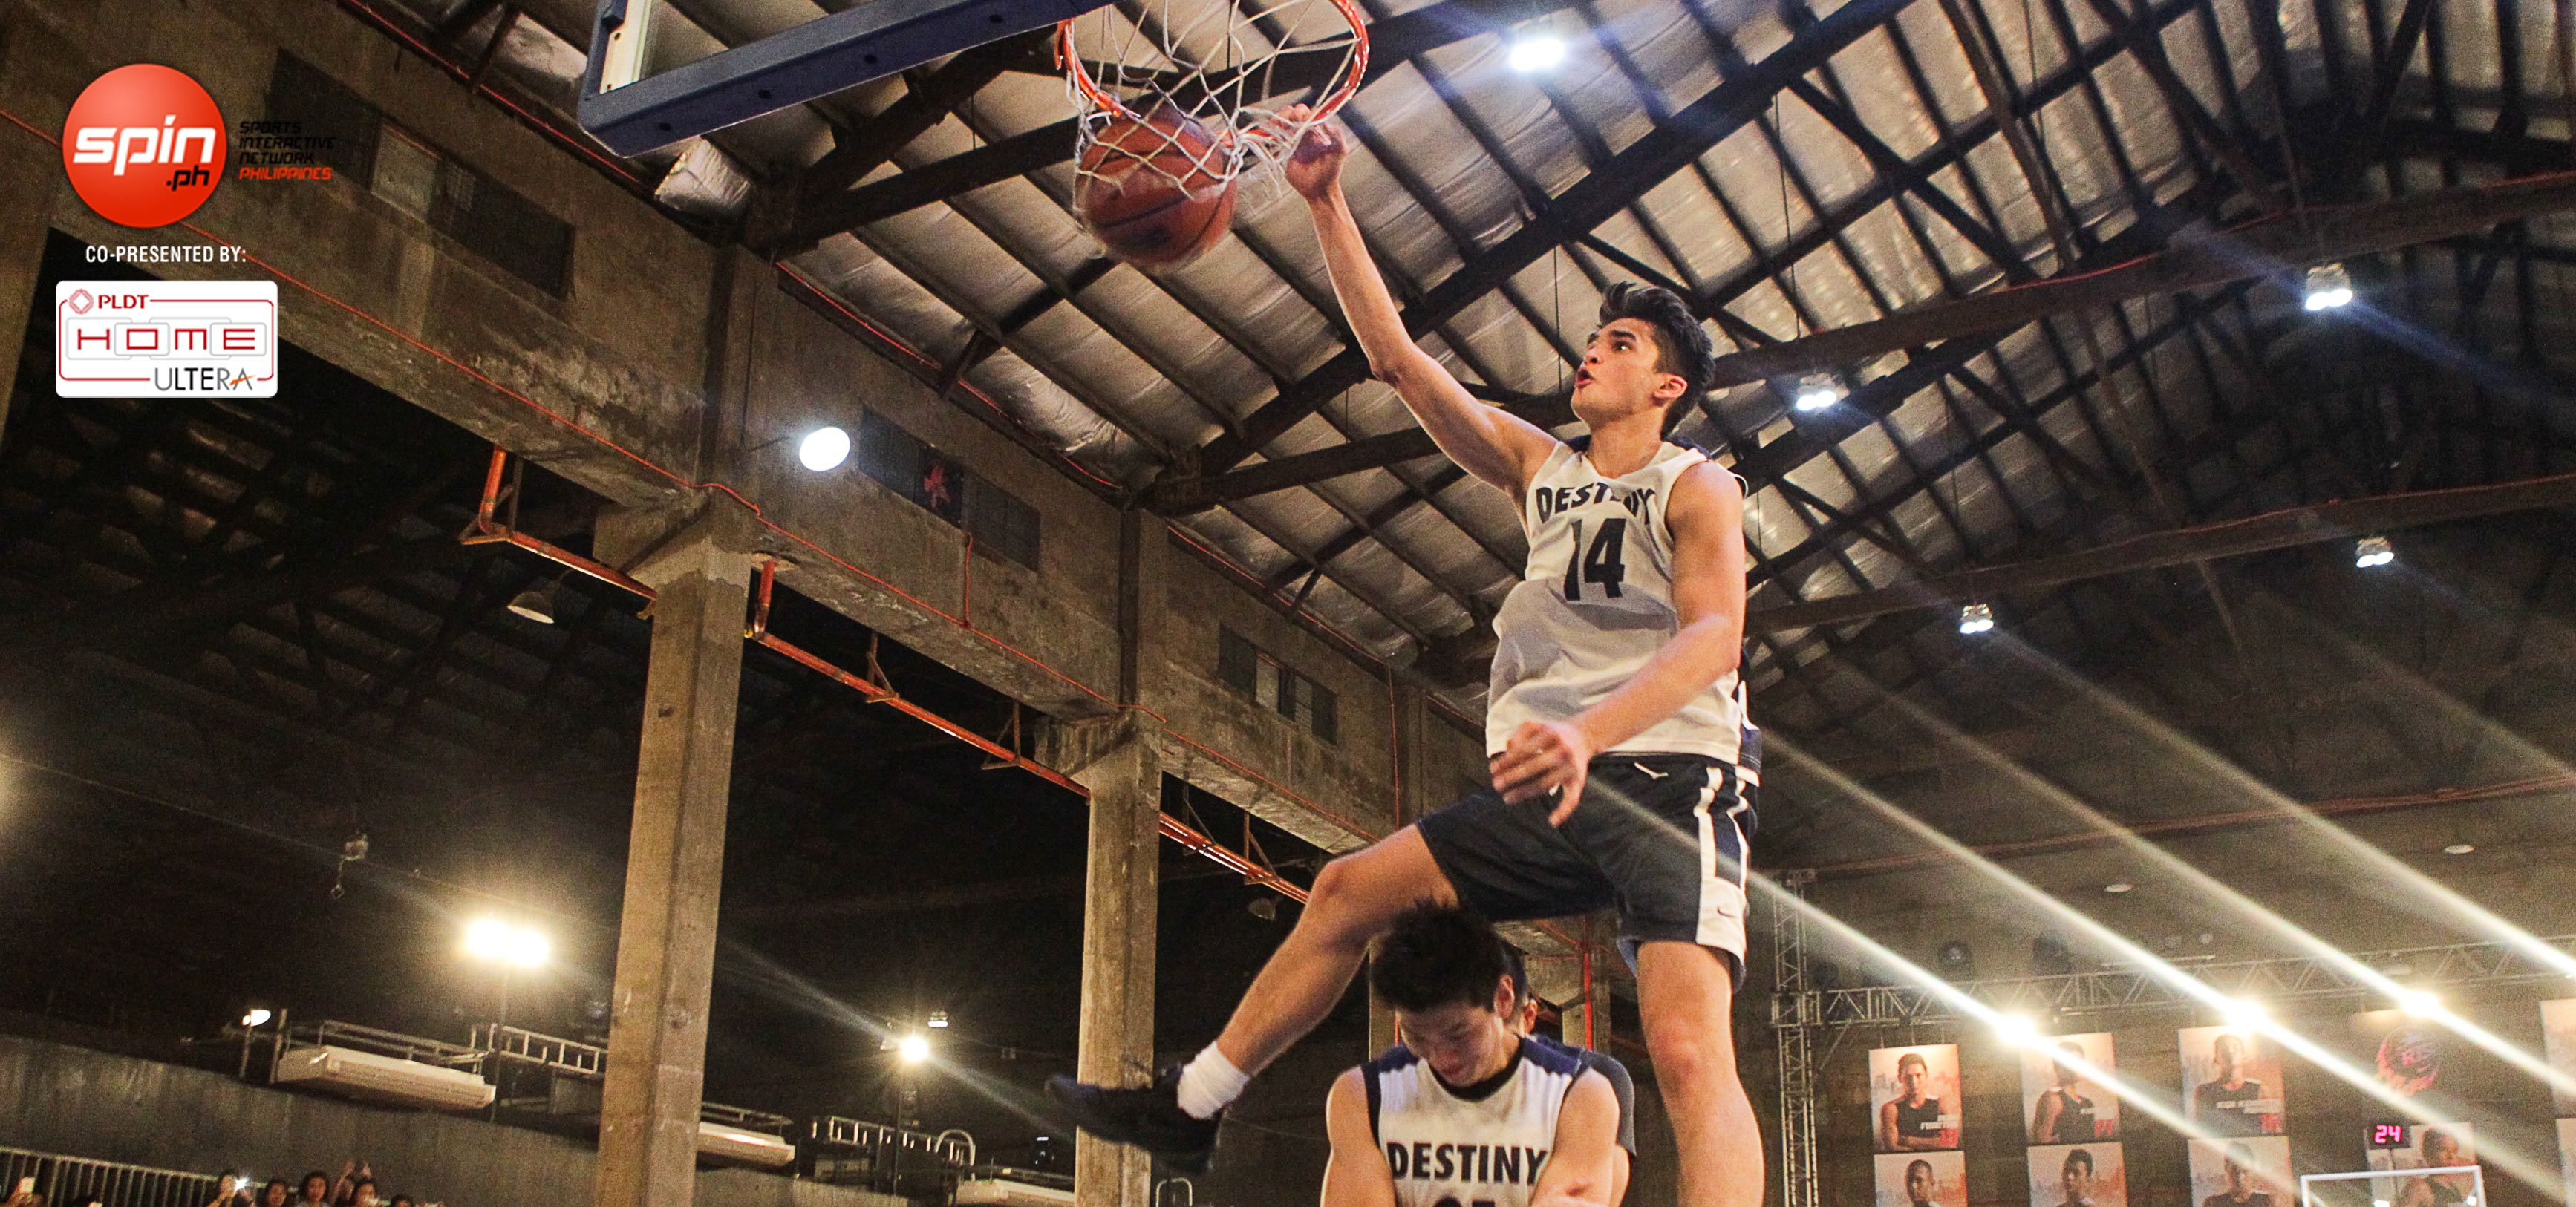 <em>Spin.ph</em><span>&nbsp;Top Ten Sports Heroes of 2015: Kobe Paras, the rising star</span>